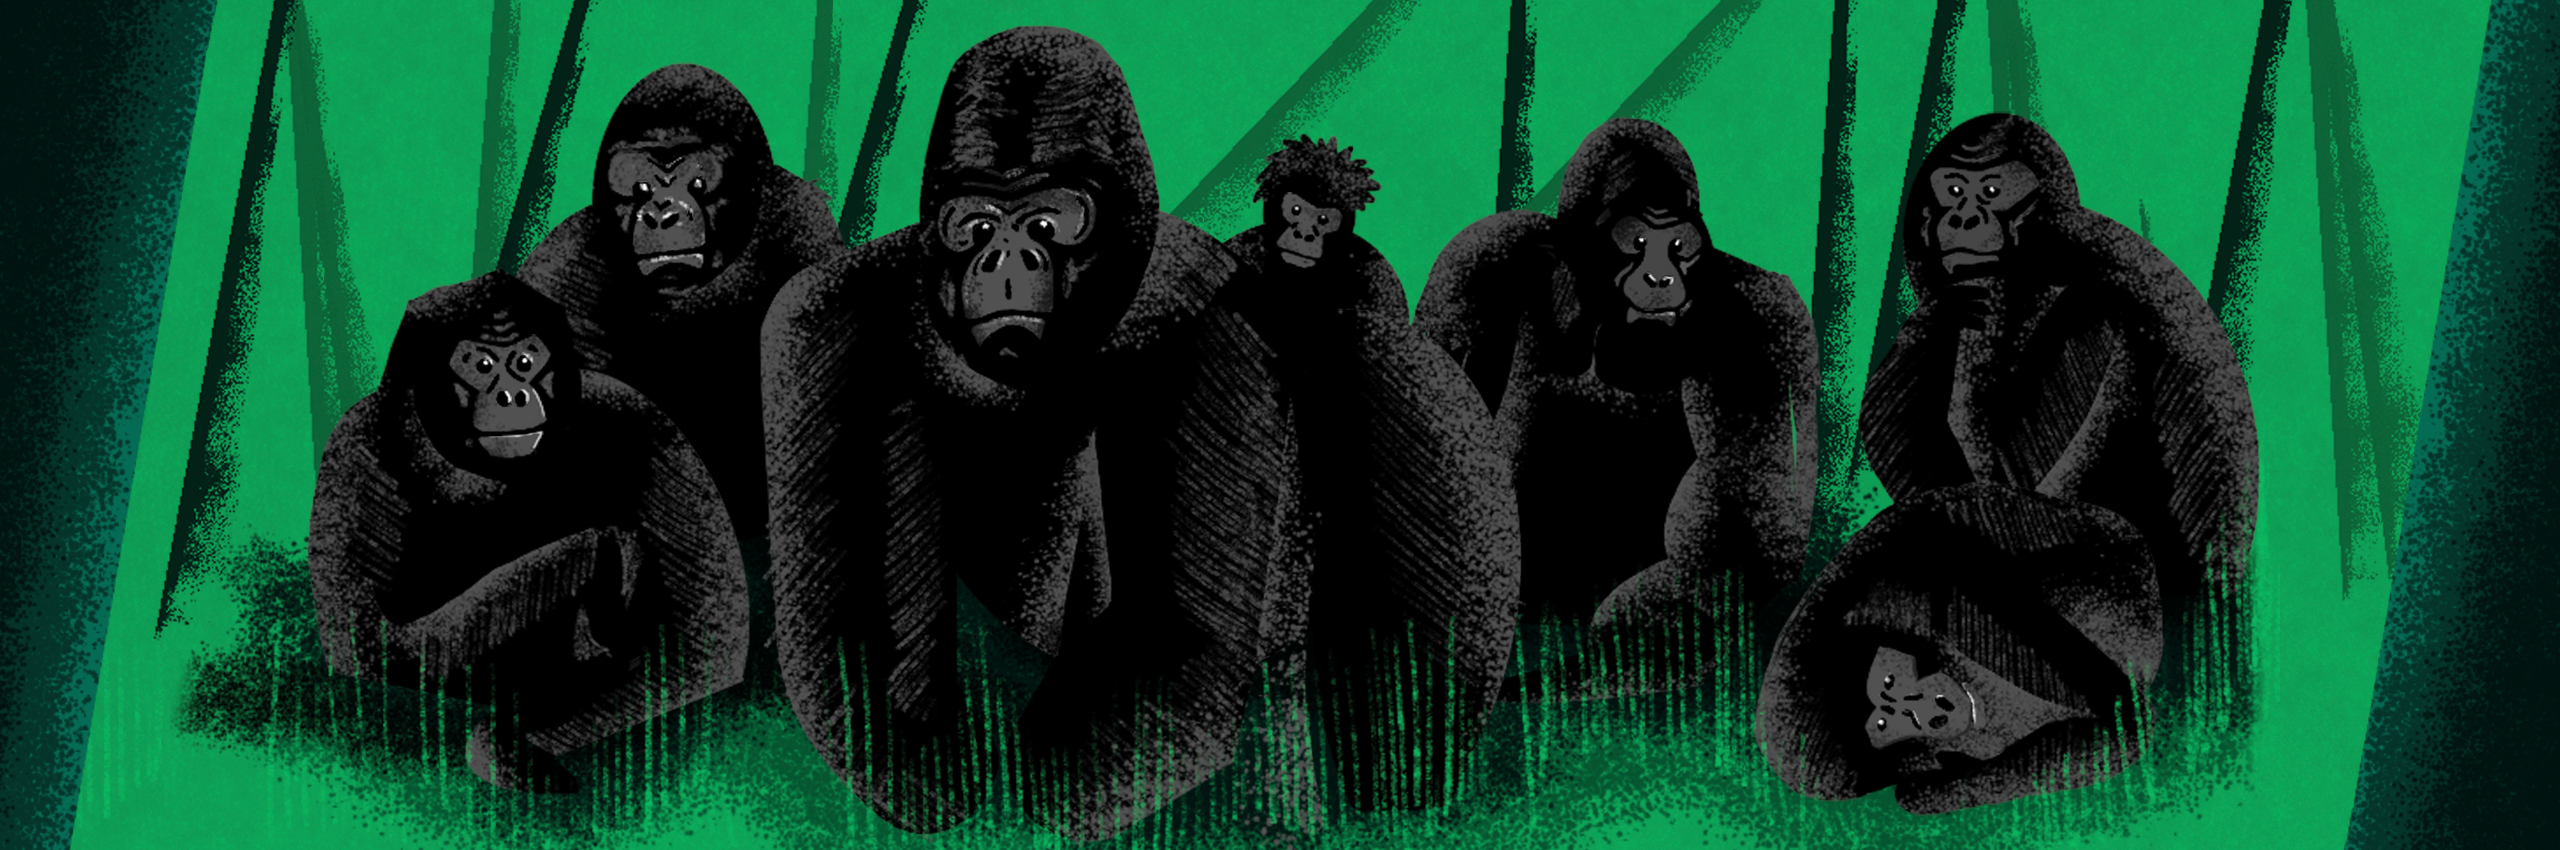 Illustration of gorillas